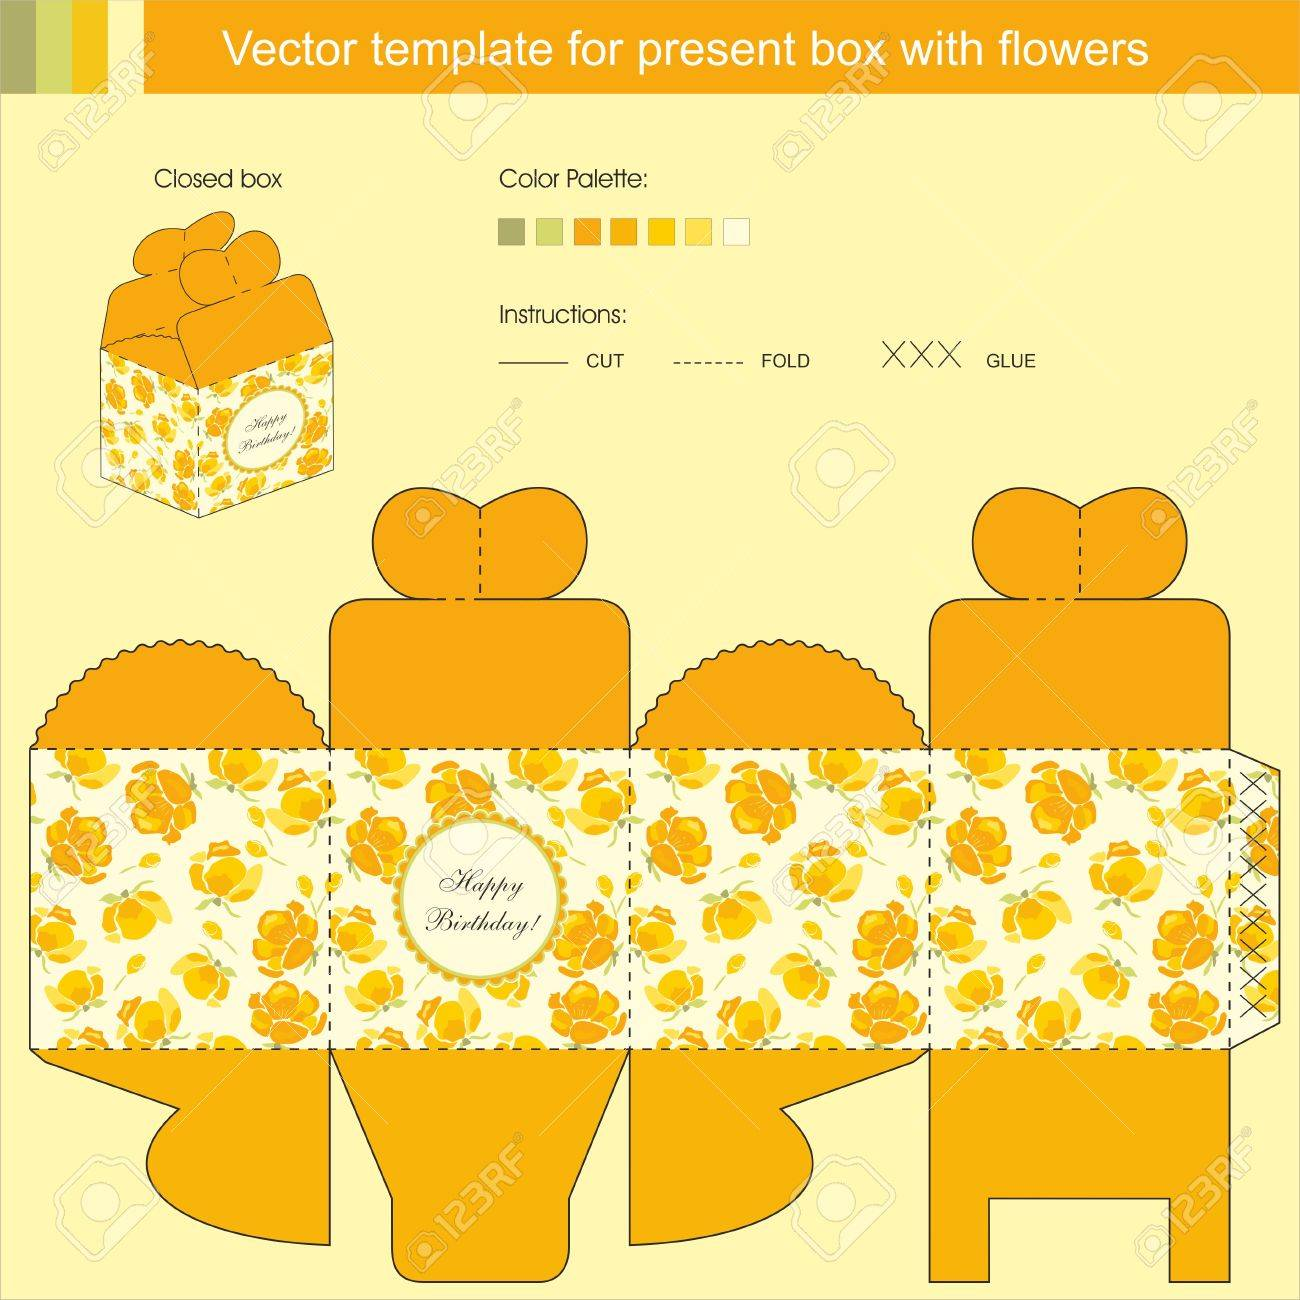 Vector template for present box with spring yellow flowers Stock Vector - 17344822